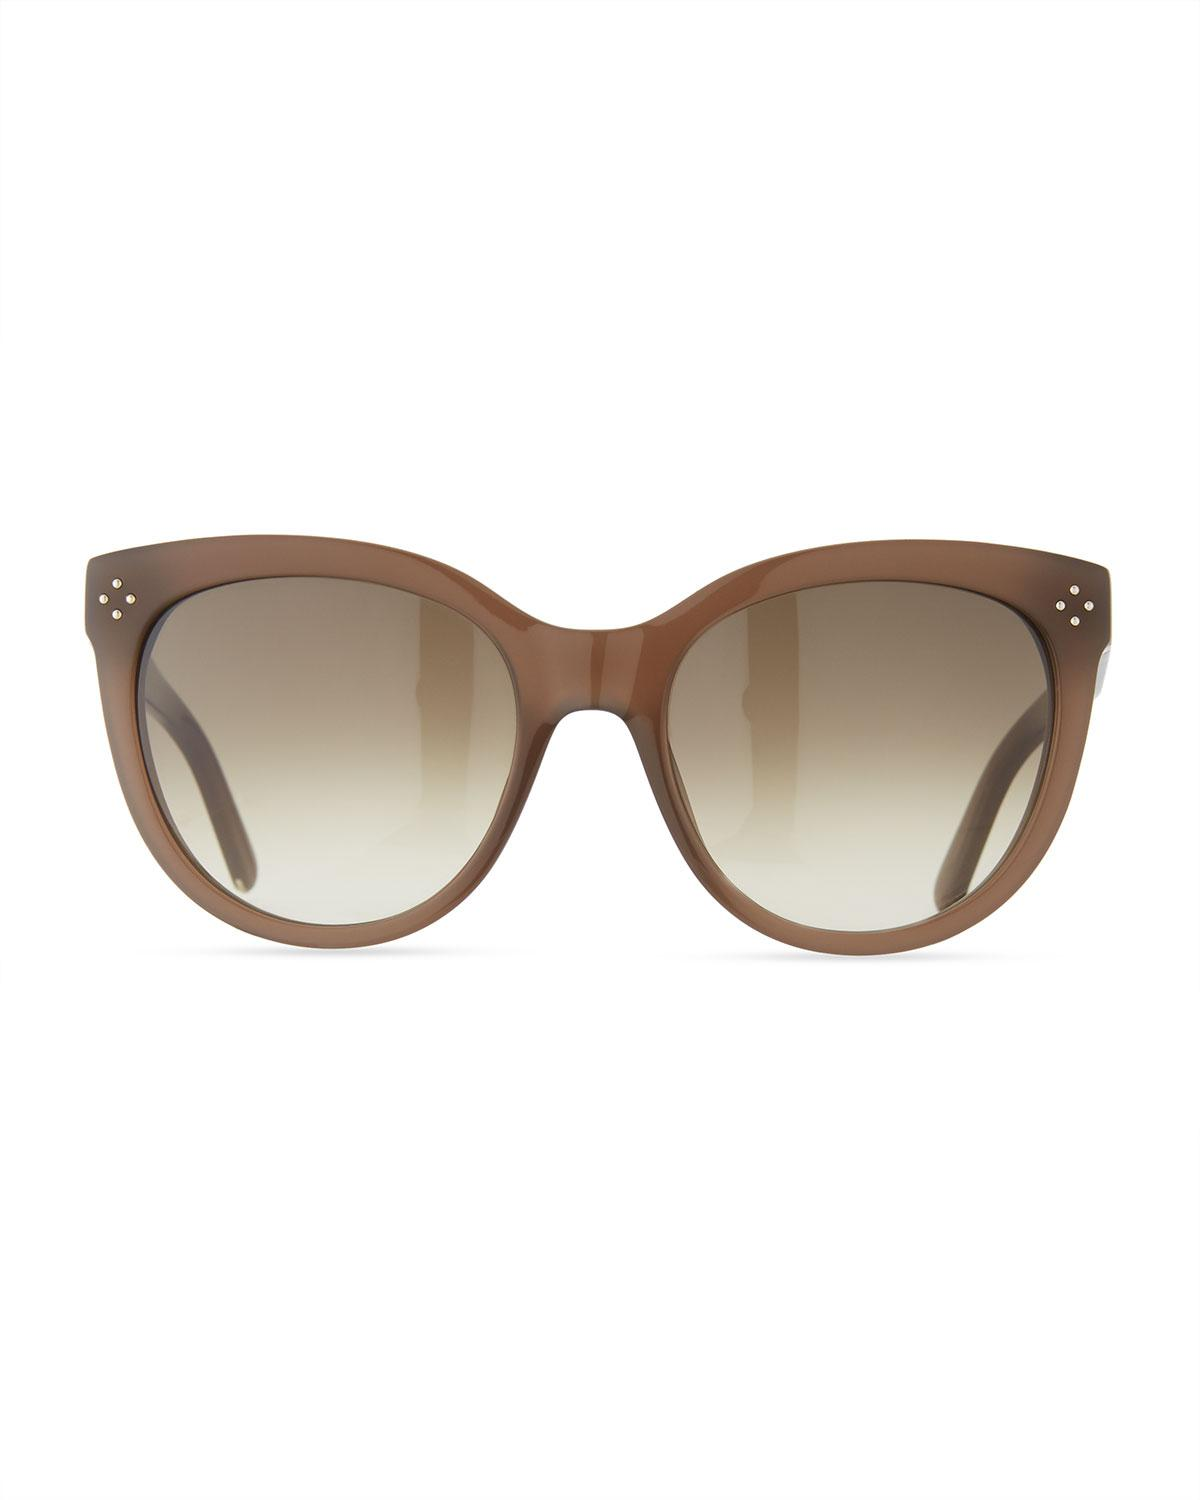 169a847fc9a2 Lyst - Chloé Boxwood Modified Cat-eye Sunglasses in Gray